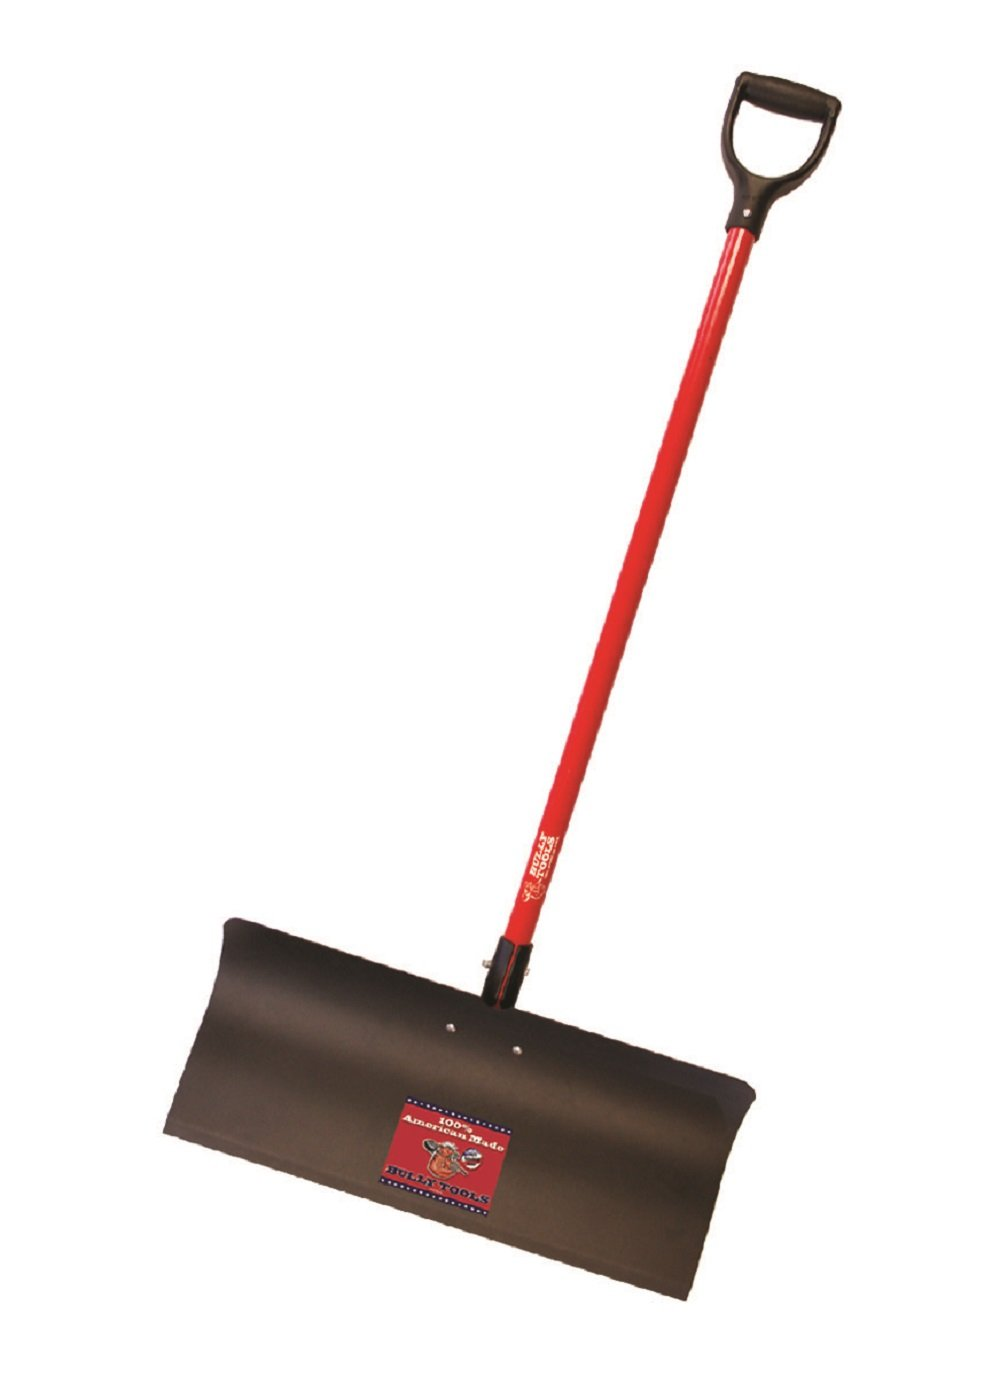 Bully Tools 92817 Steel Snow Pusher with Fiberglass D-Grip Handle, 24'' by Bully Tools